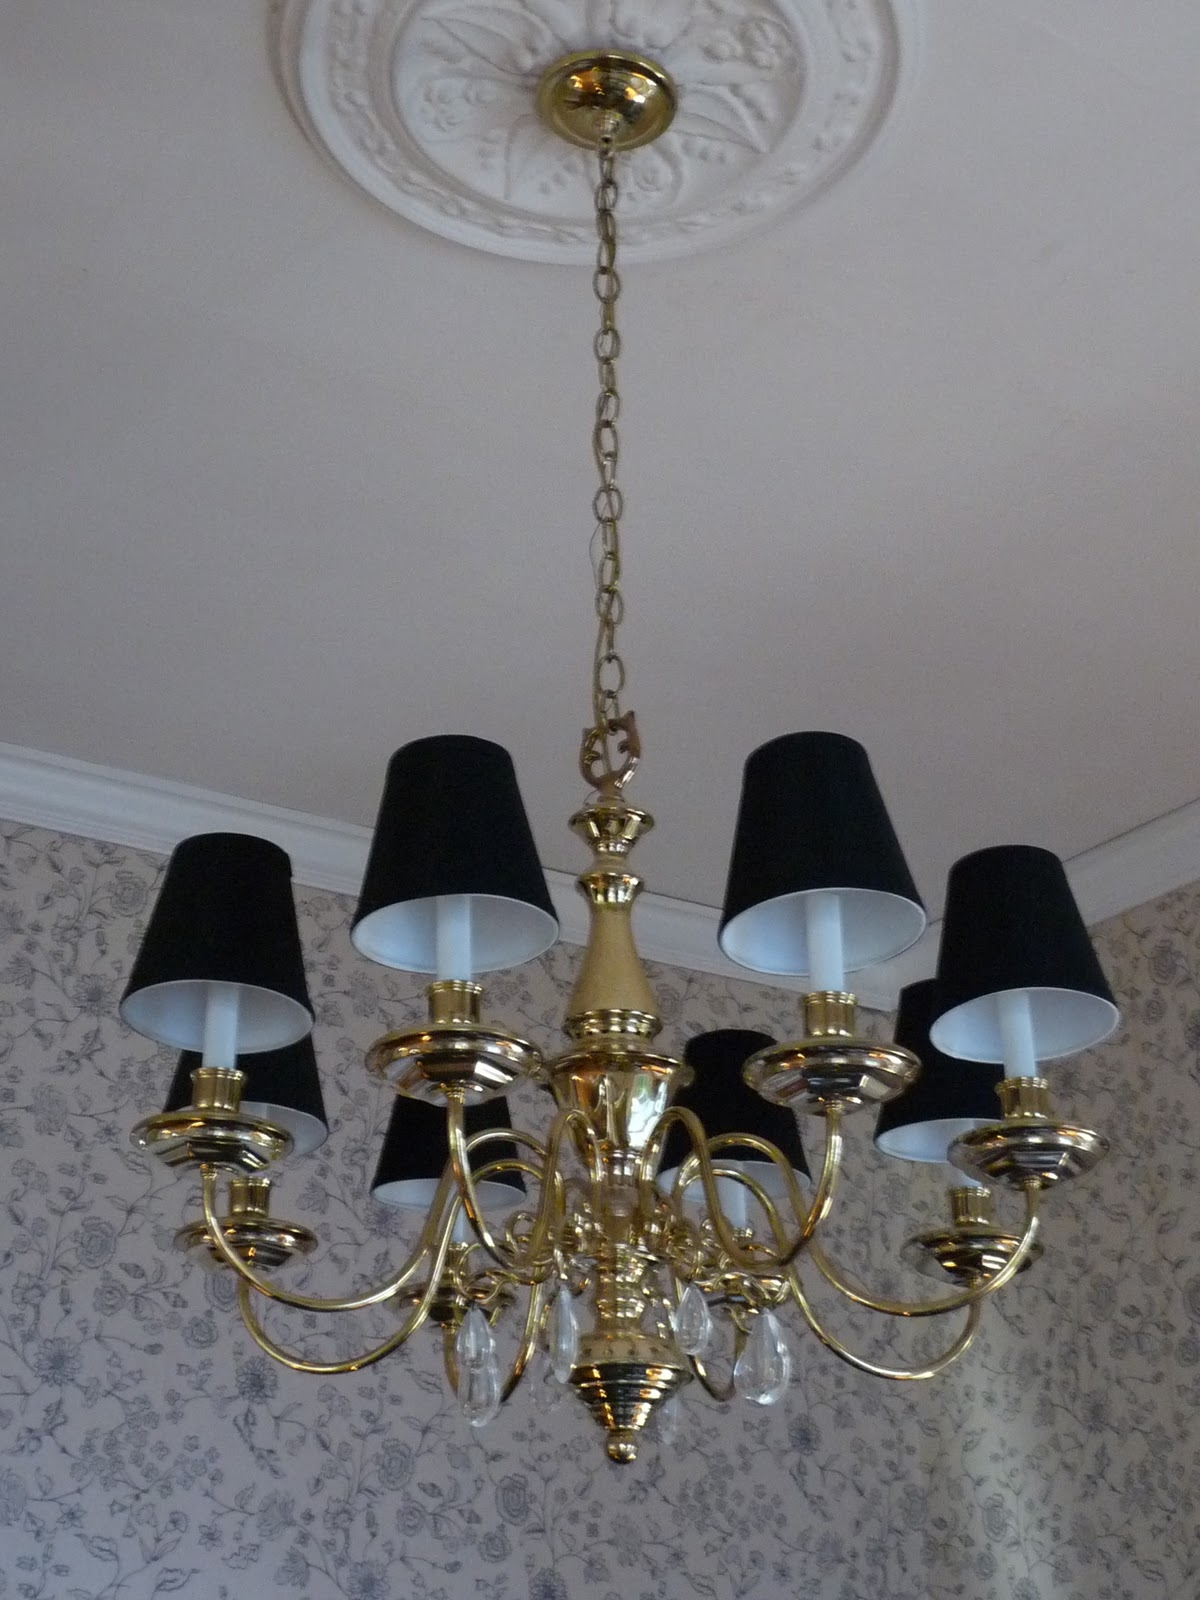 Lighting Beautiful Lowes Chandelier For Home Lighting Ideas Pertaining To Chandeliers With Black Shades (Image 16 of 25)